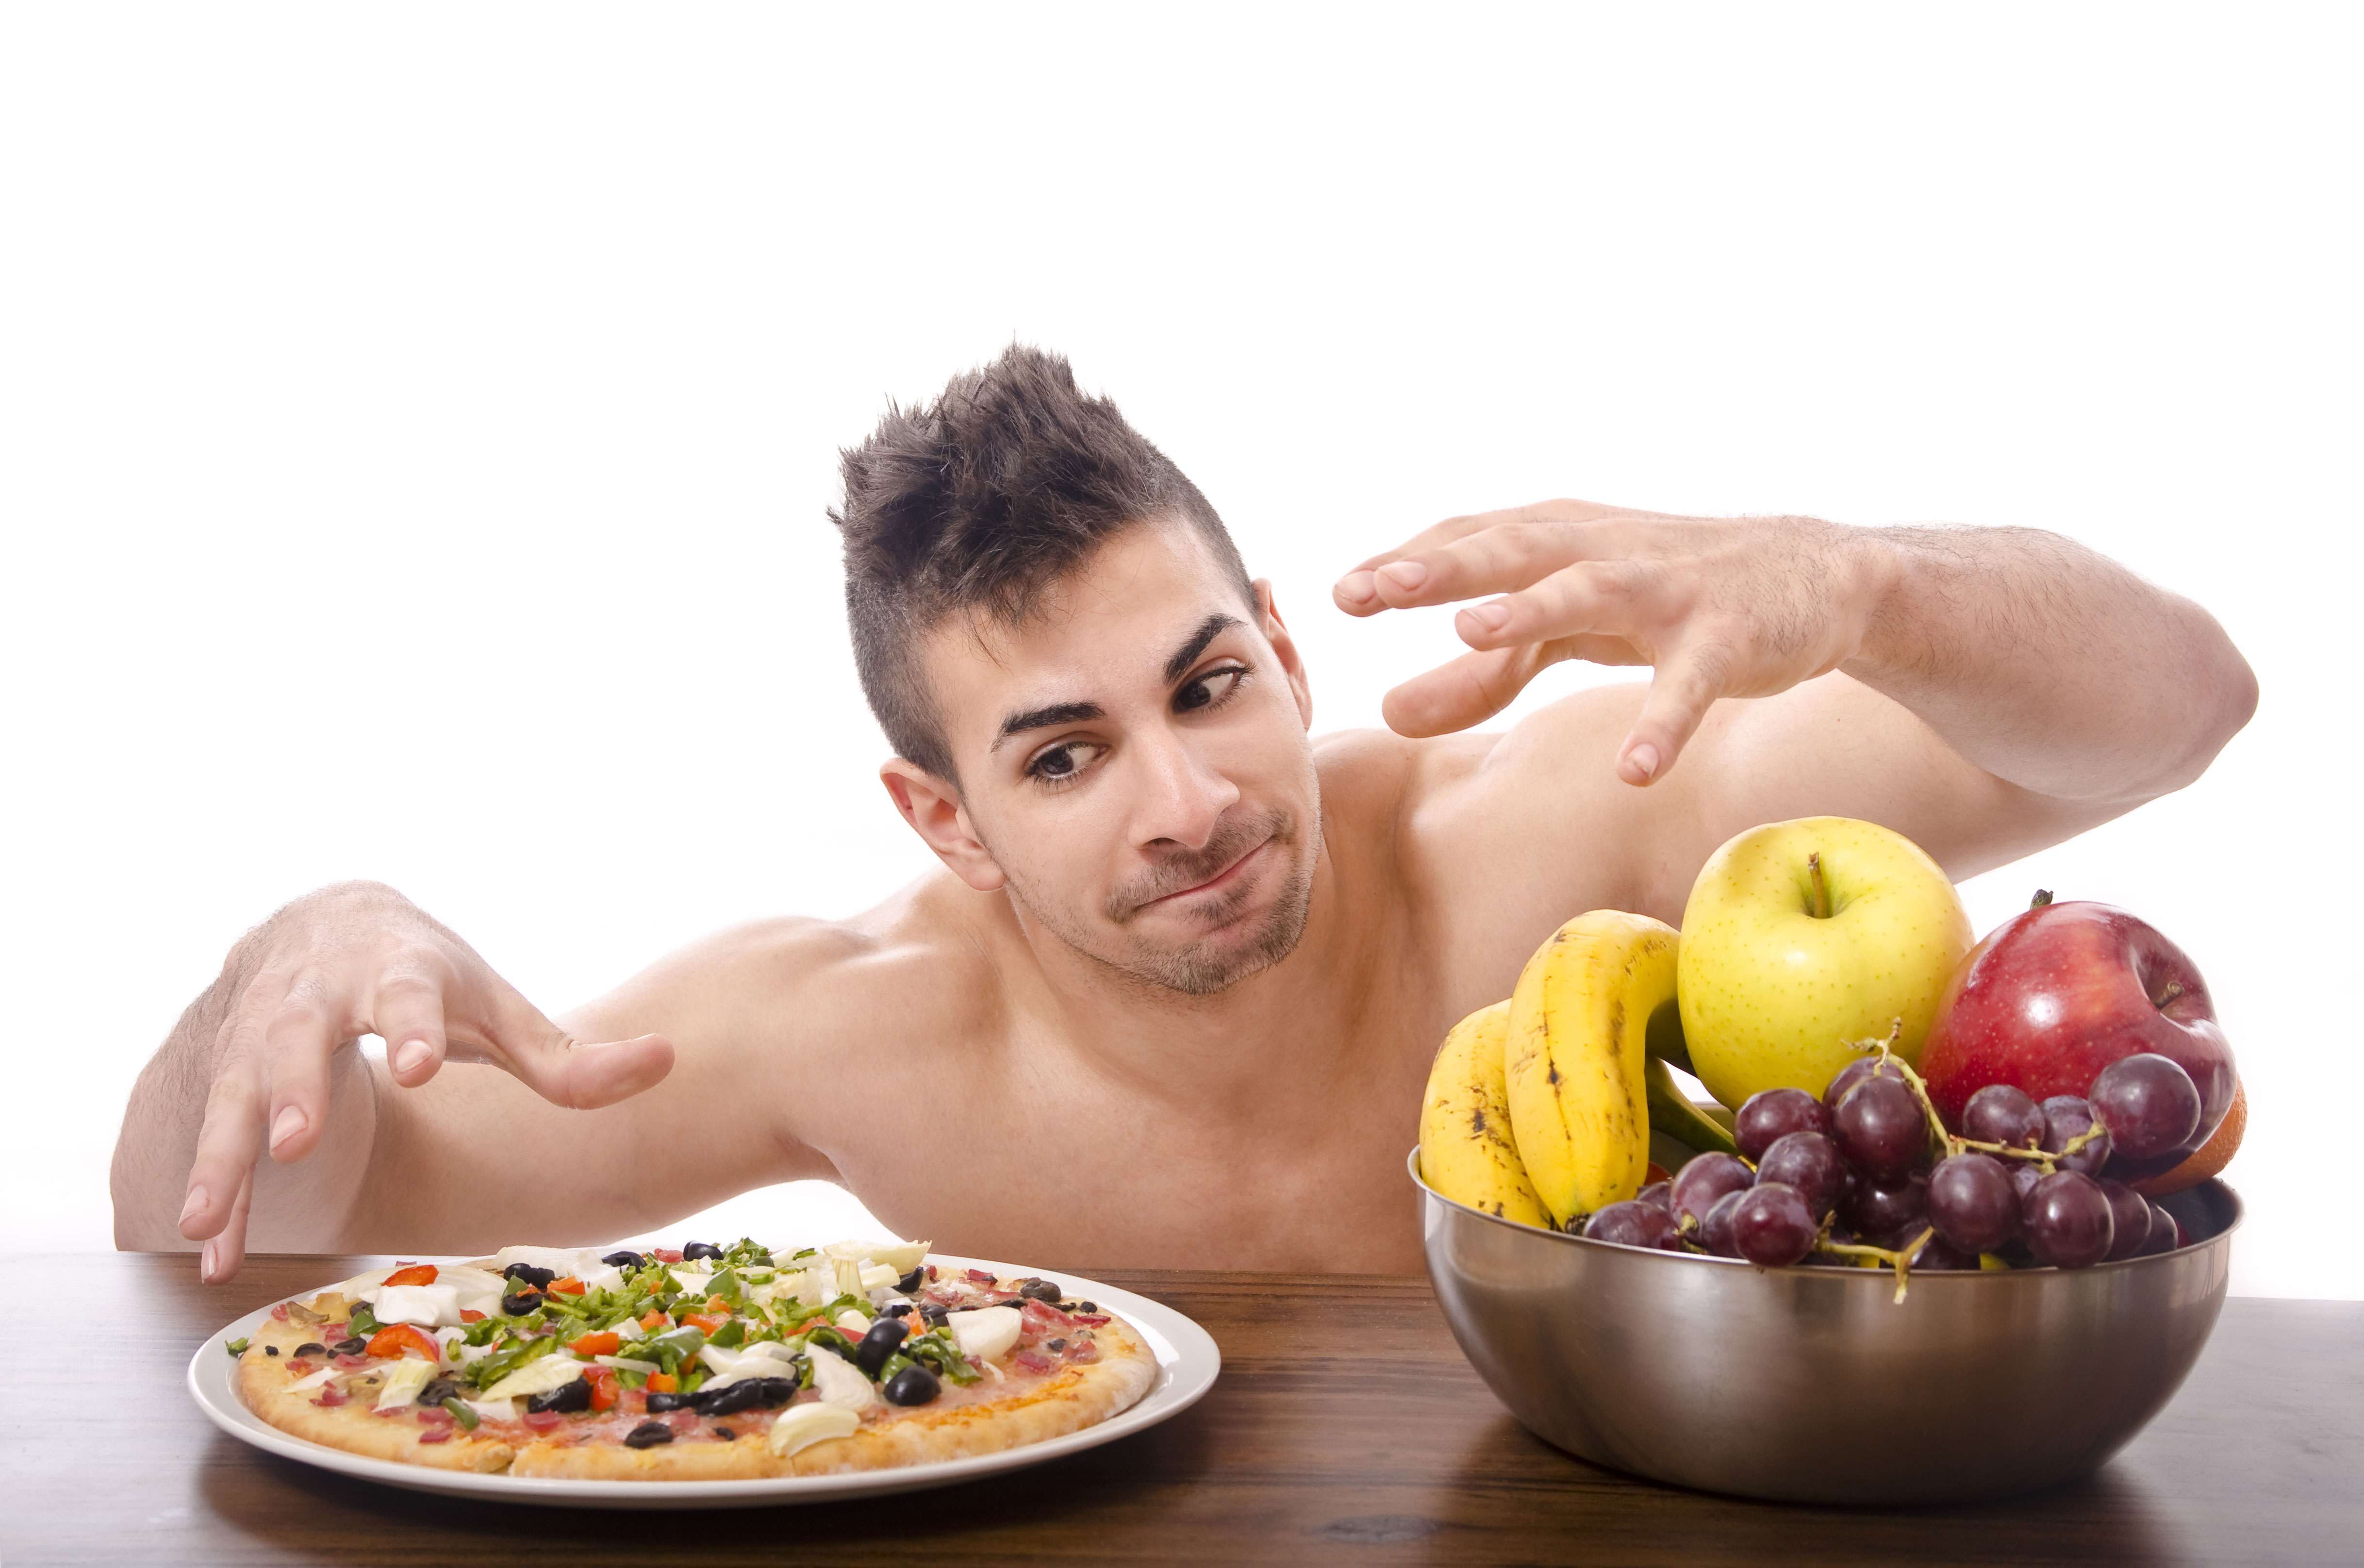 Healthiest People Do Also Make Health Mistakes